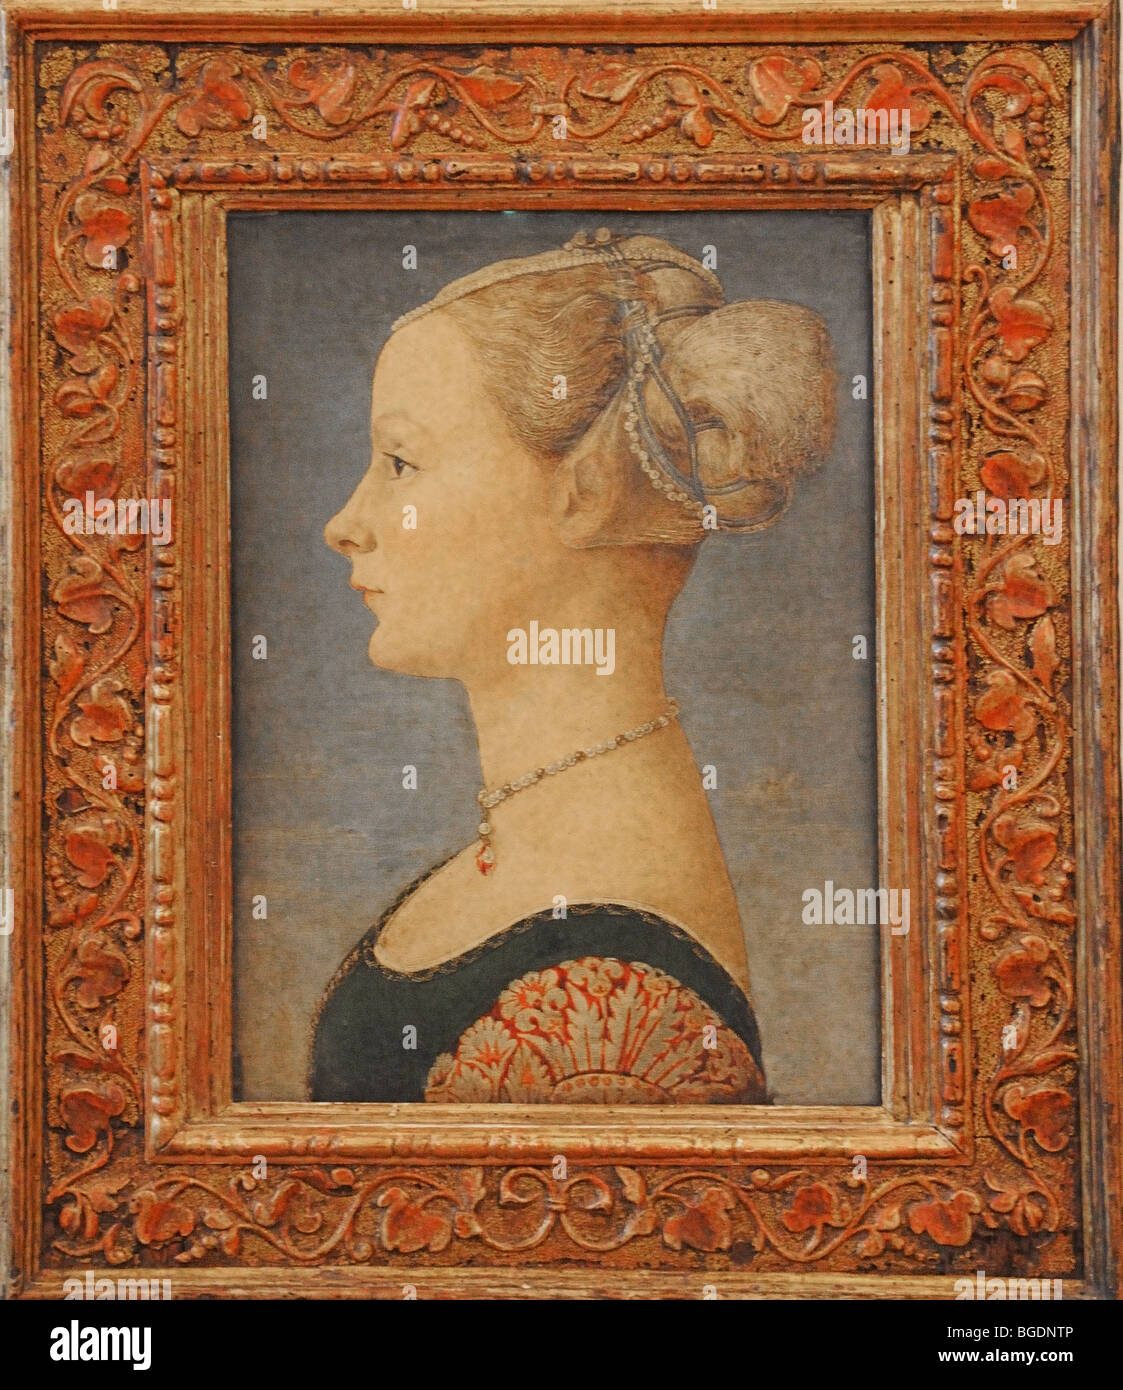 Framed painting by artist Piero del Pollaiuolo known as Portrait of a Lady - Stock Image